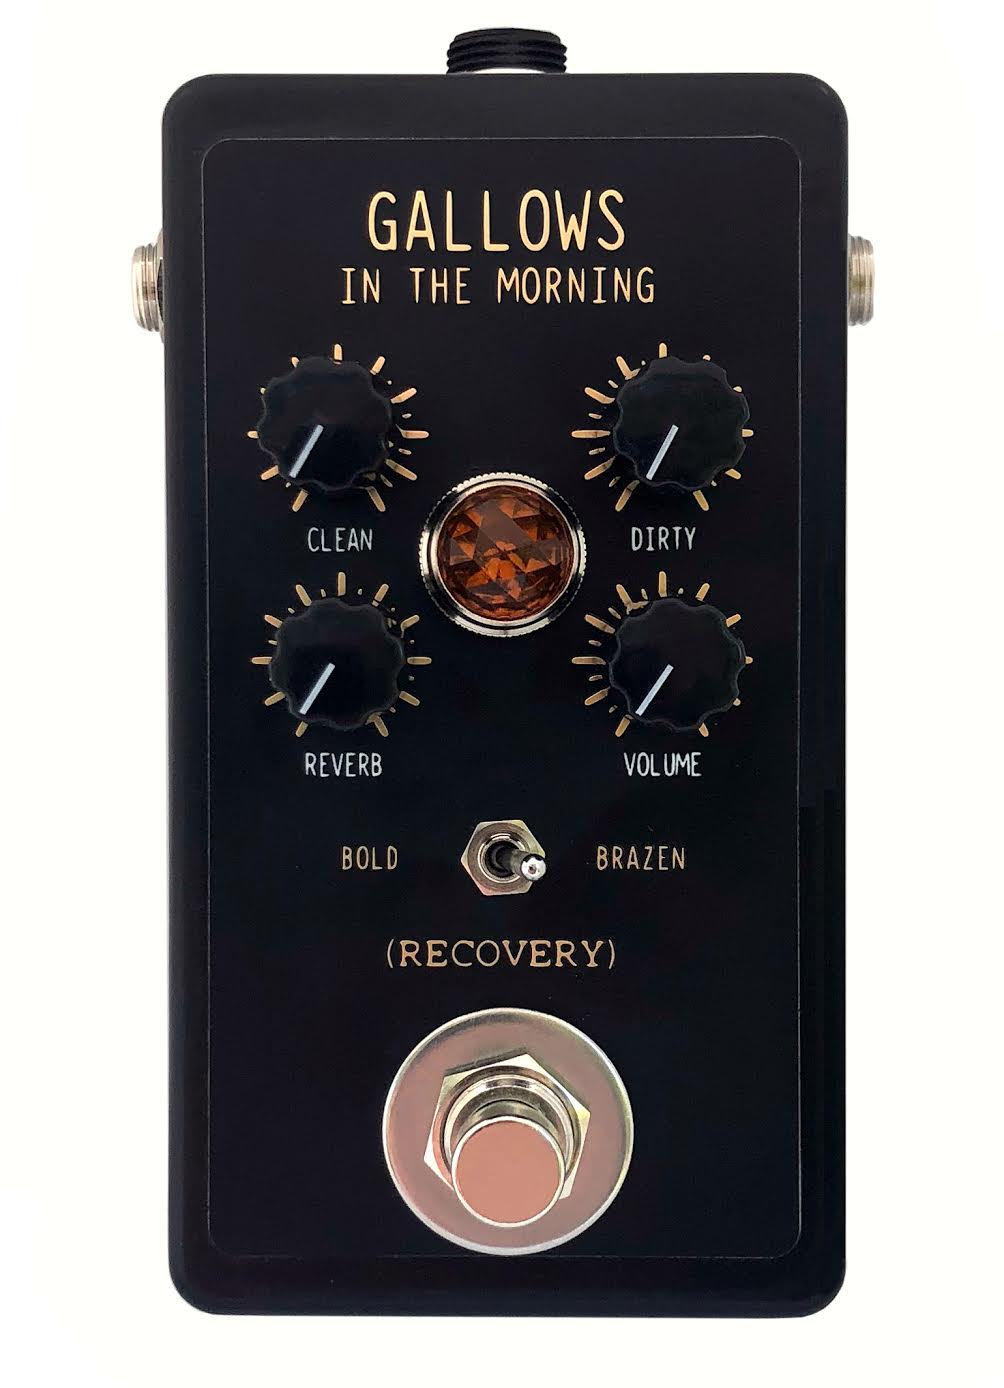 GALLOWS IN THE MORNING (Double Overdrive + Haunting Reverb)